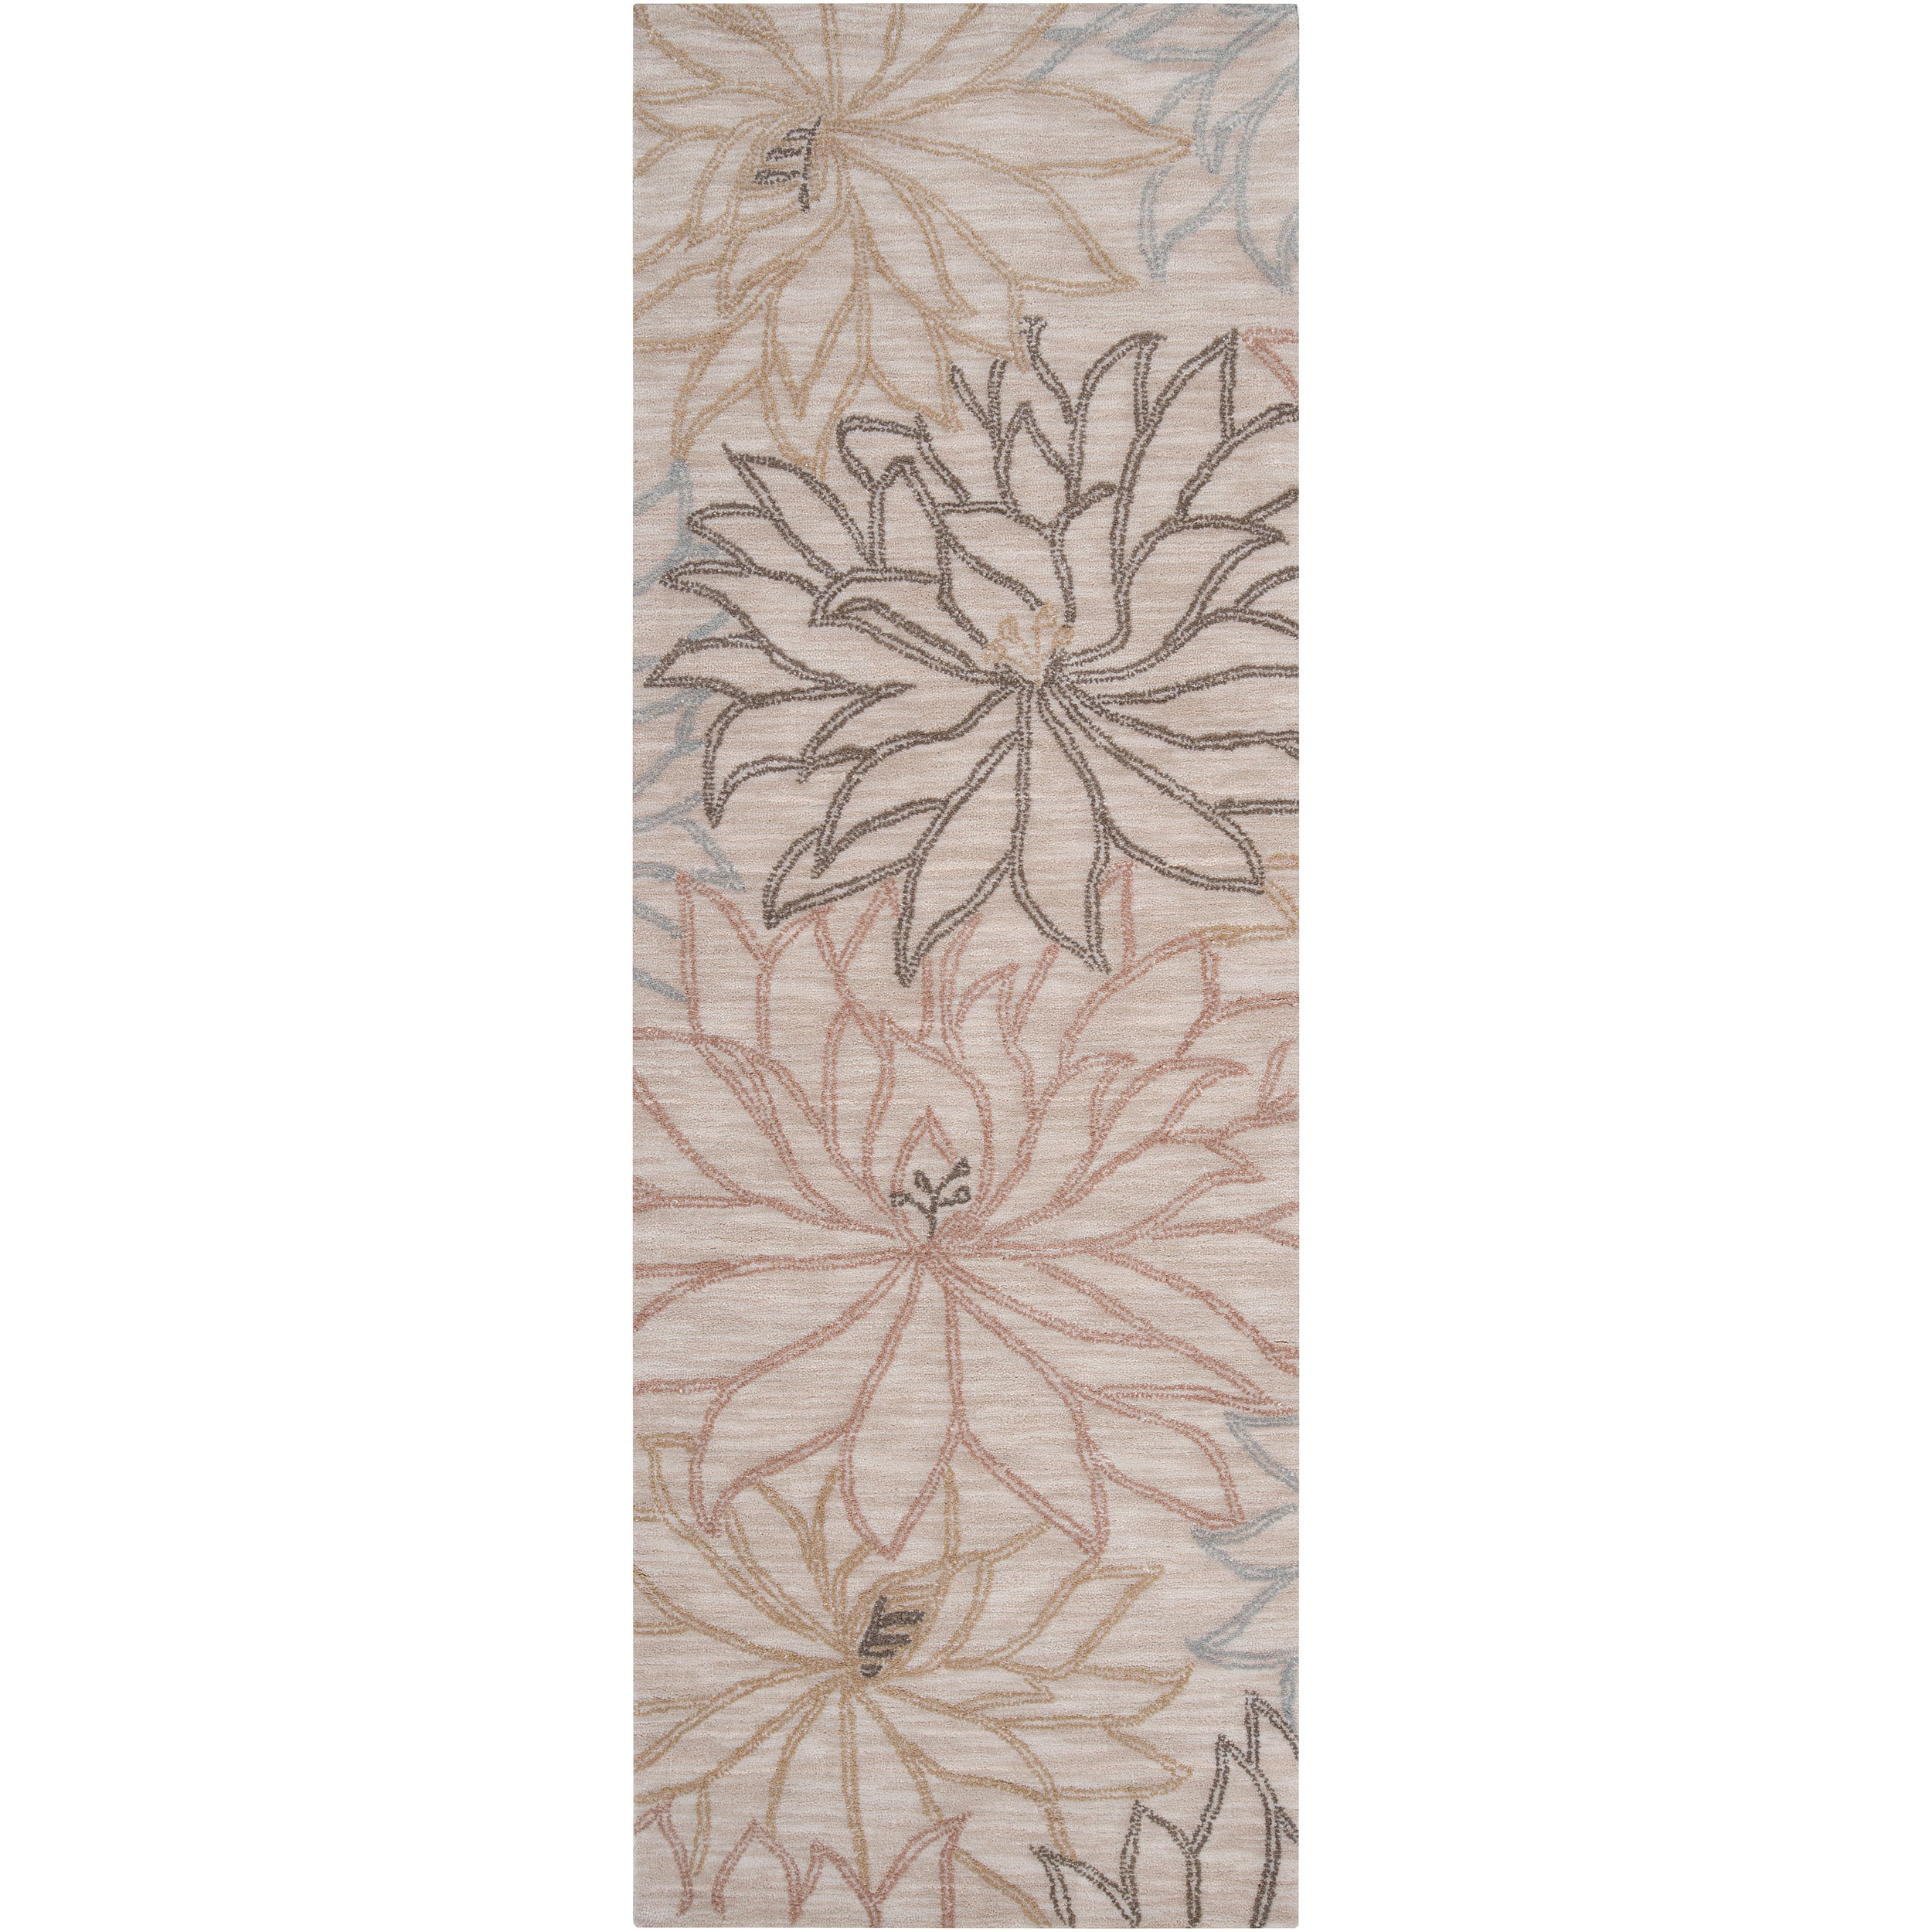 Hand-tufted Cream Ameila Polyester Rug (2'6 x 7'6)